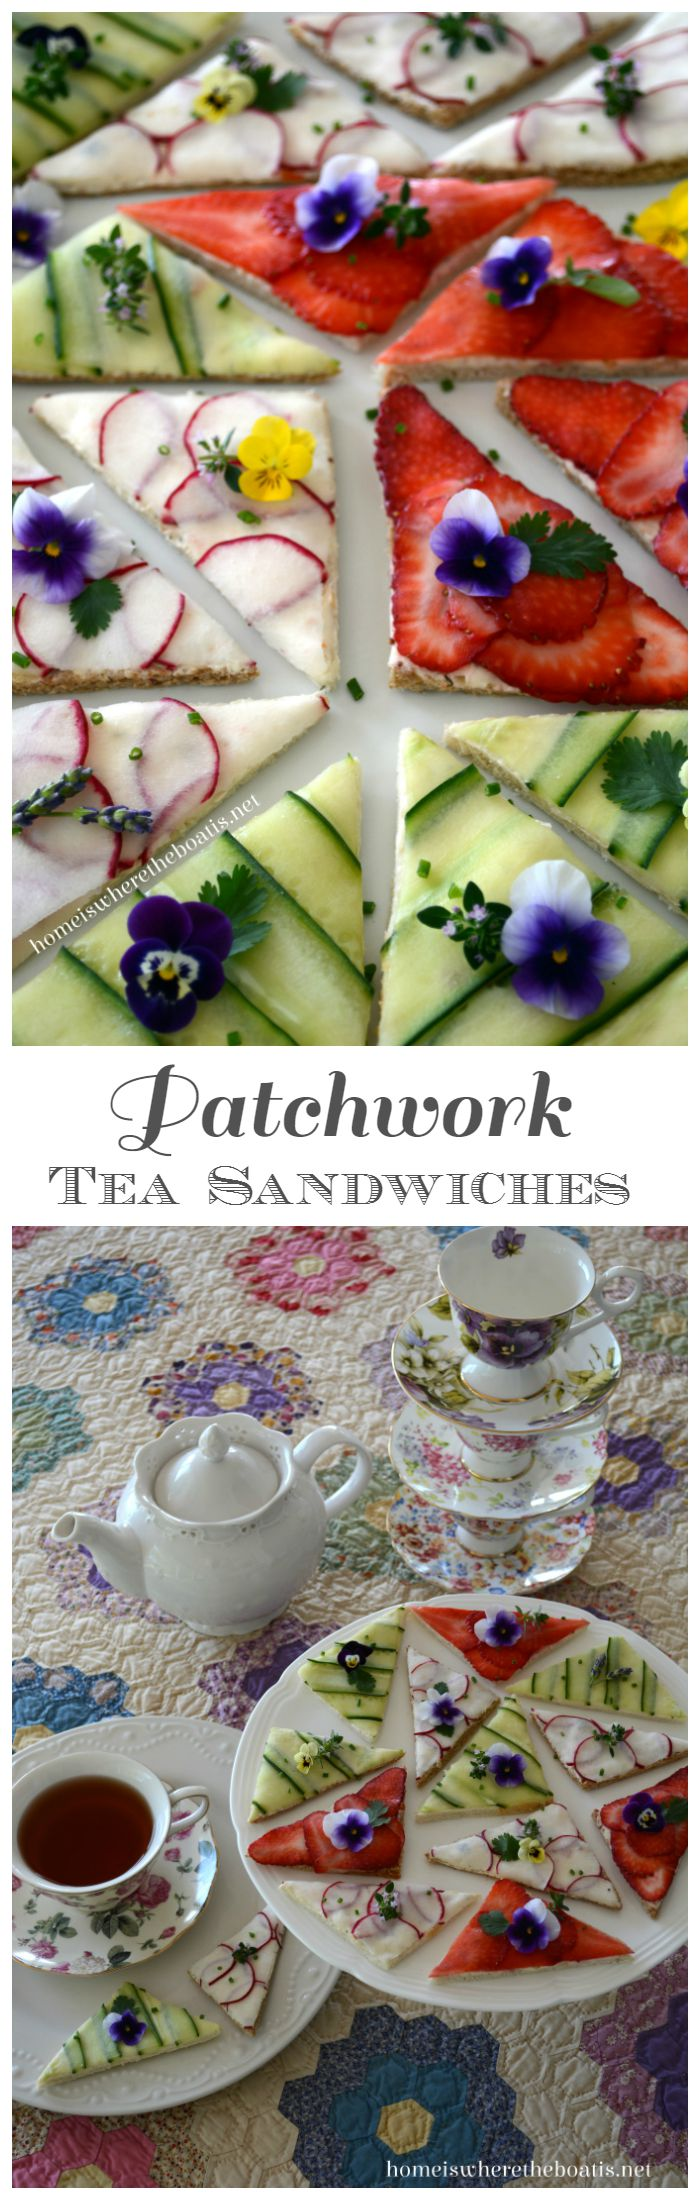 Patchwork Tea Sandwiches